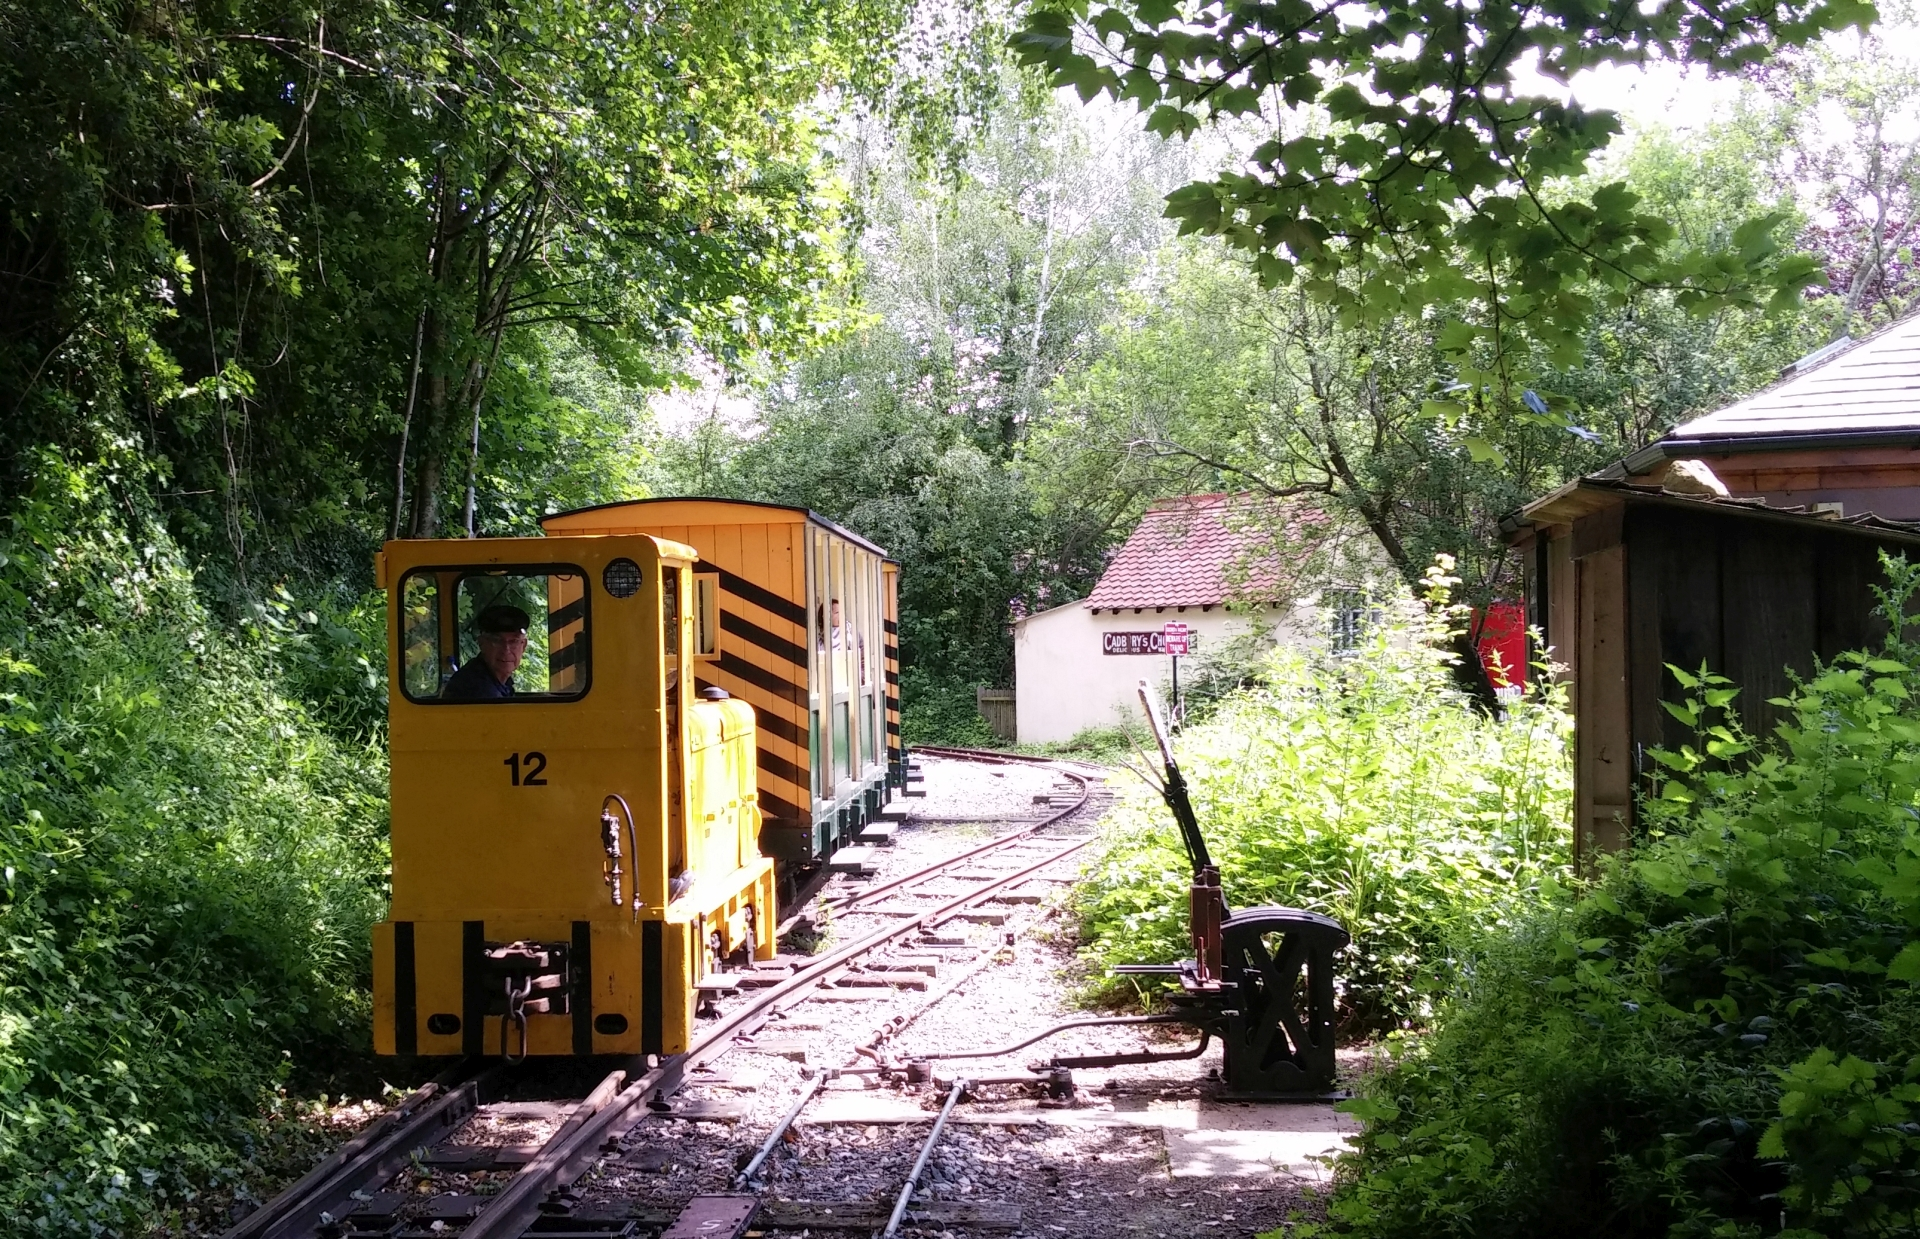 train approaching Amberley station at the Museum